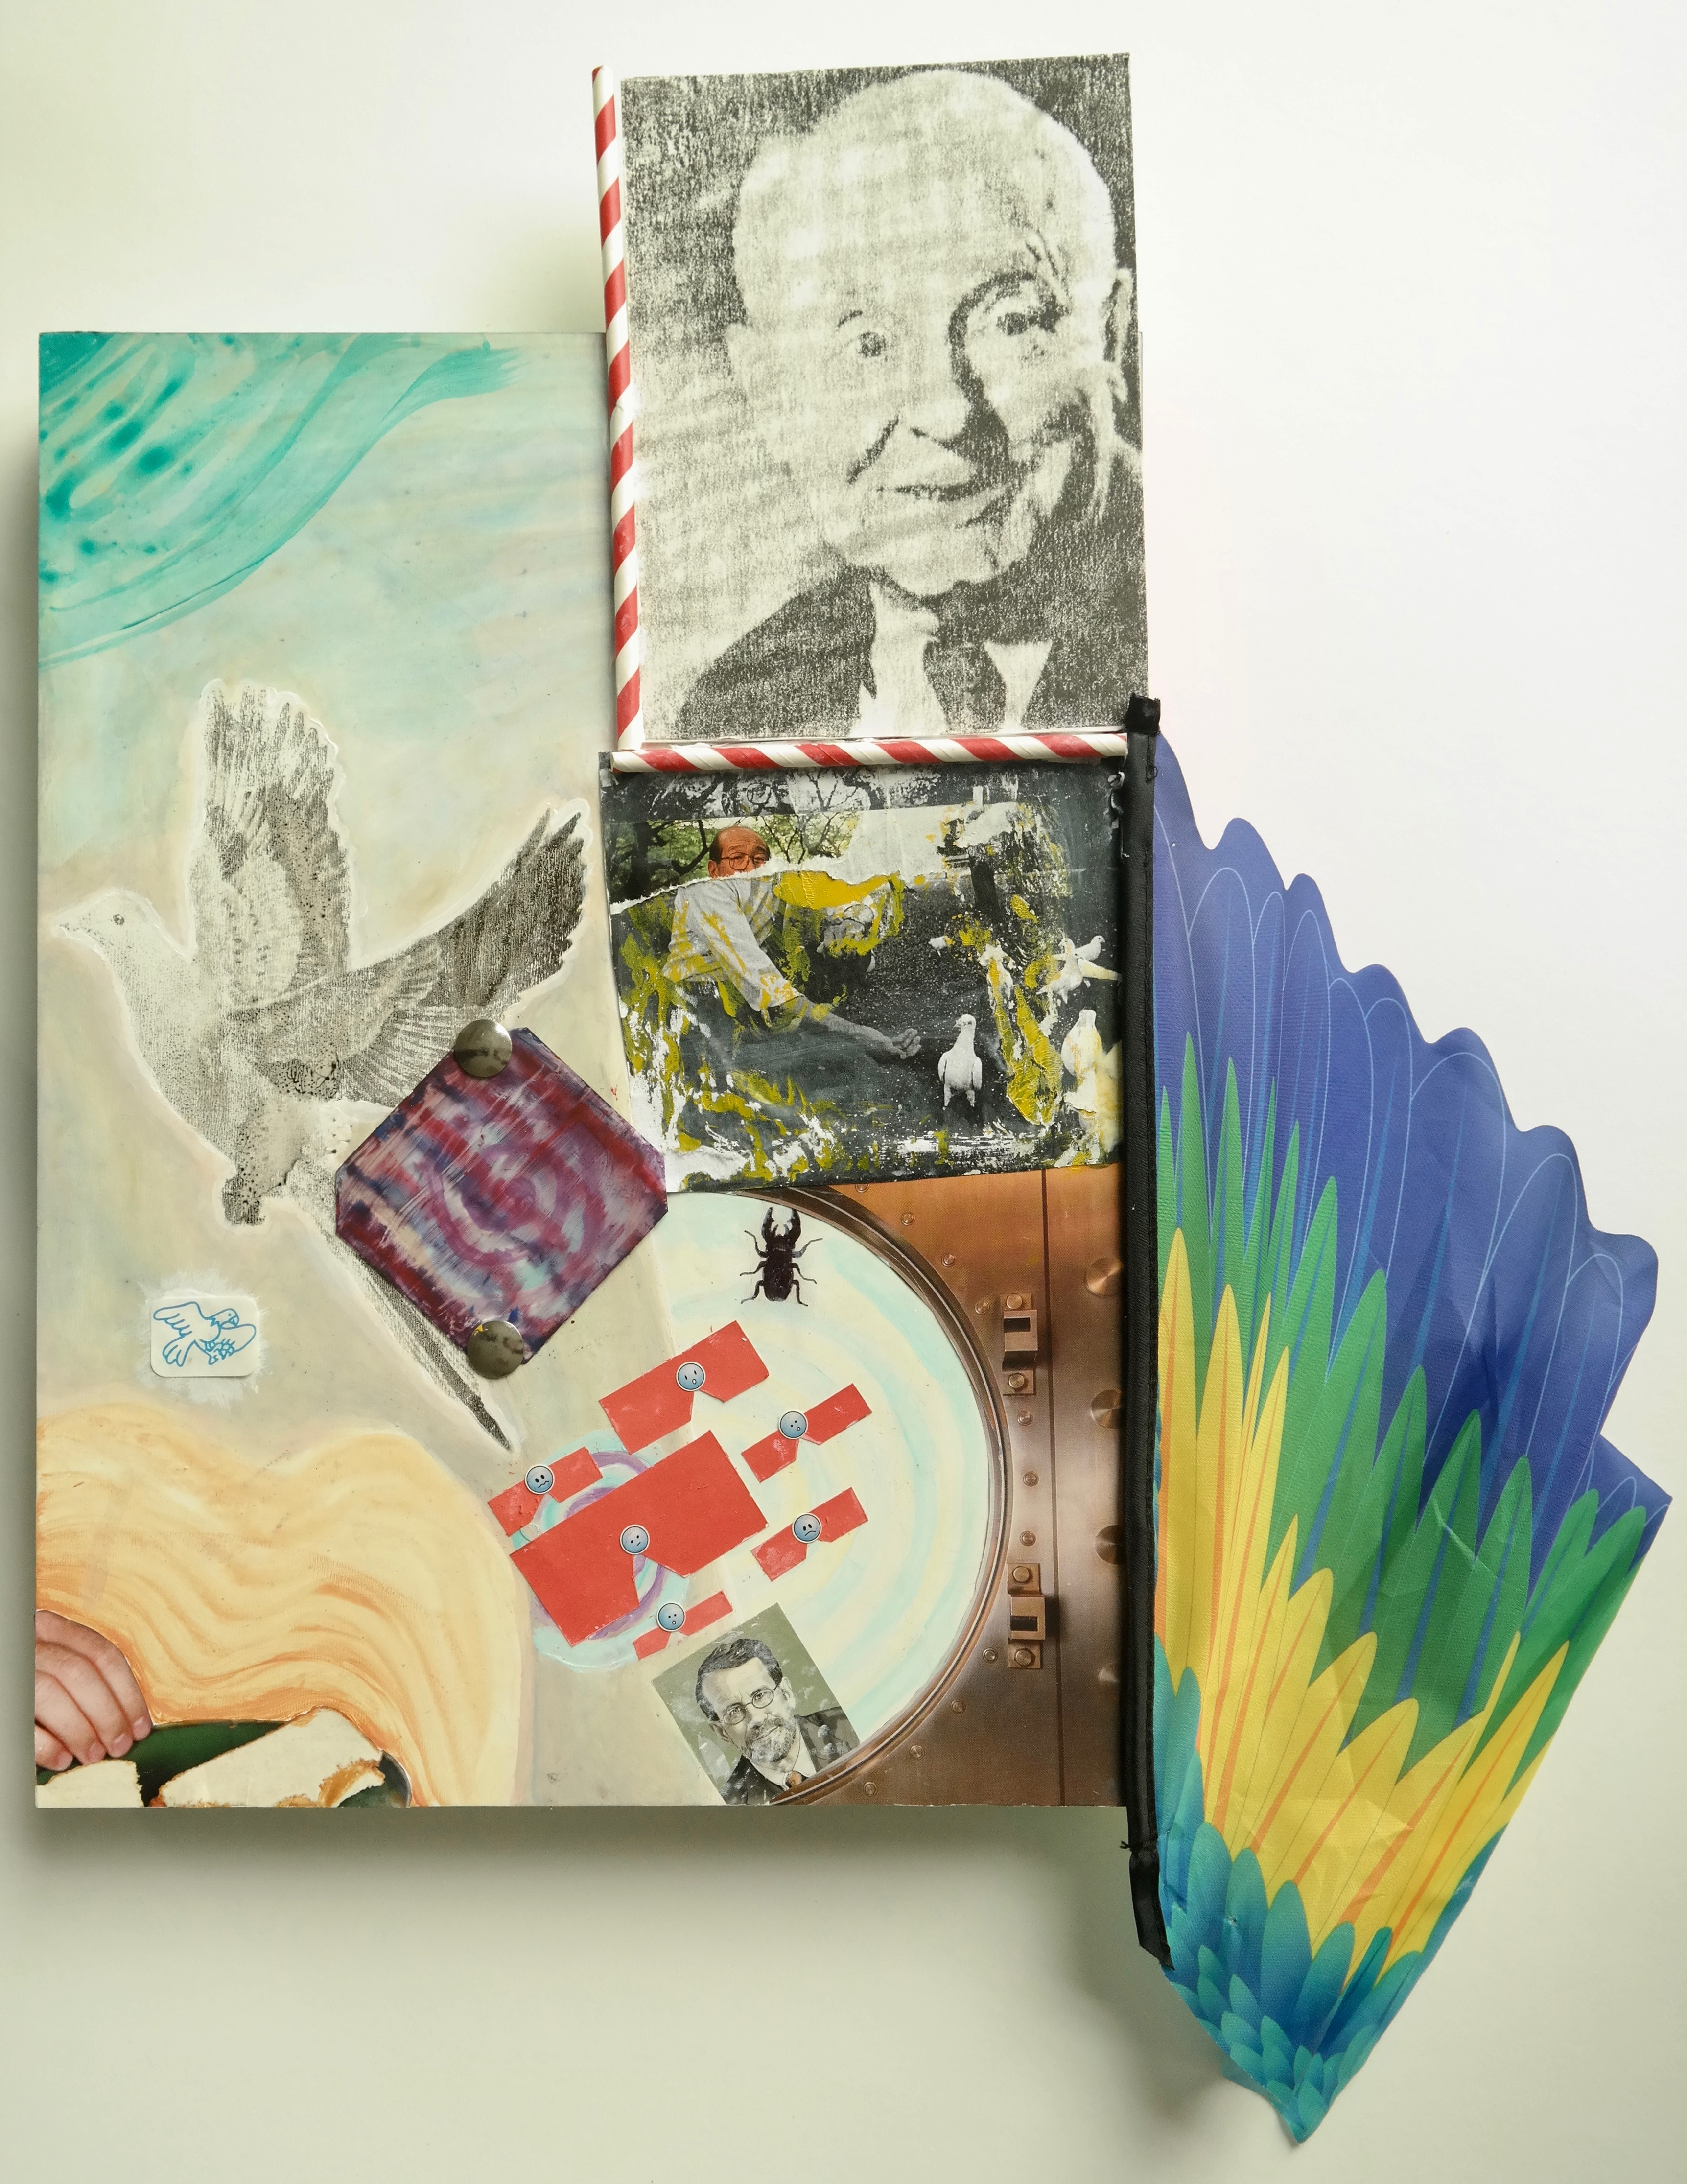 Liam B. '20, Untitled, acrylic paint, transfers, collage, stickers, thumbtacks, drinking straws, and plastic kite wing on cradled panel, 2018